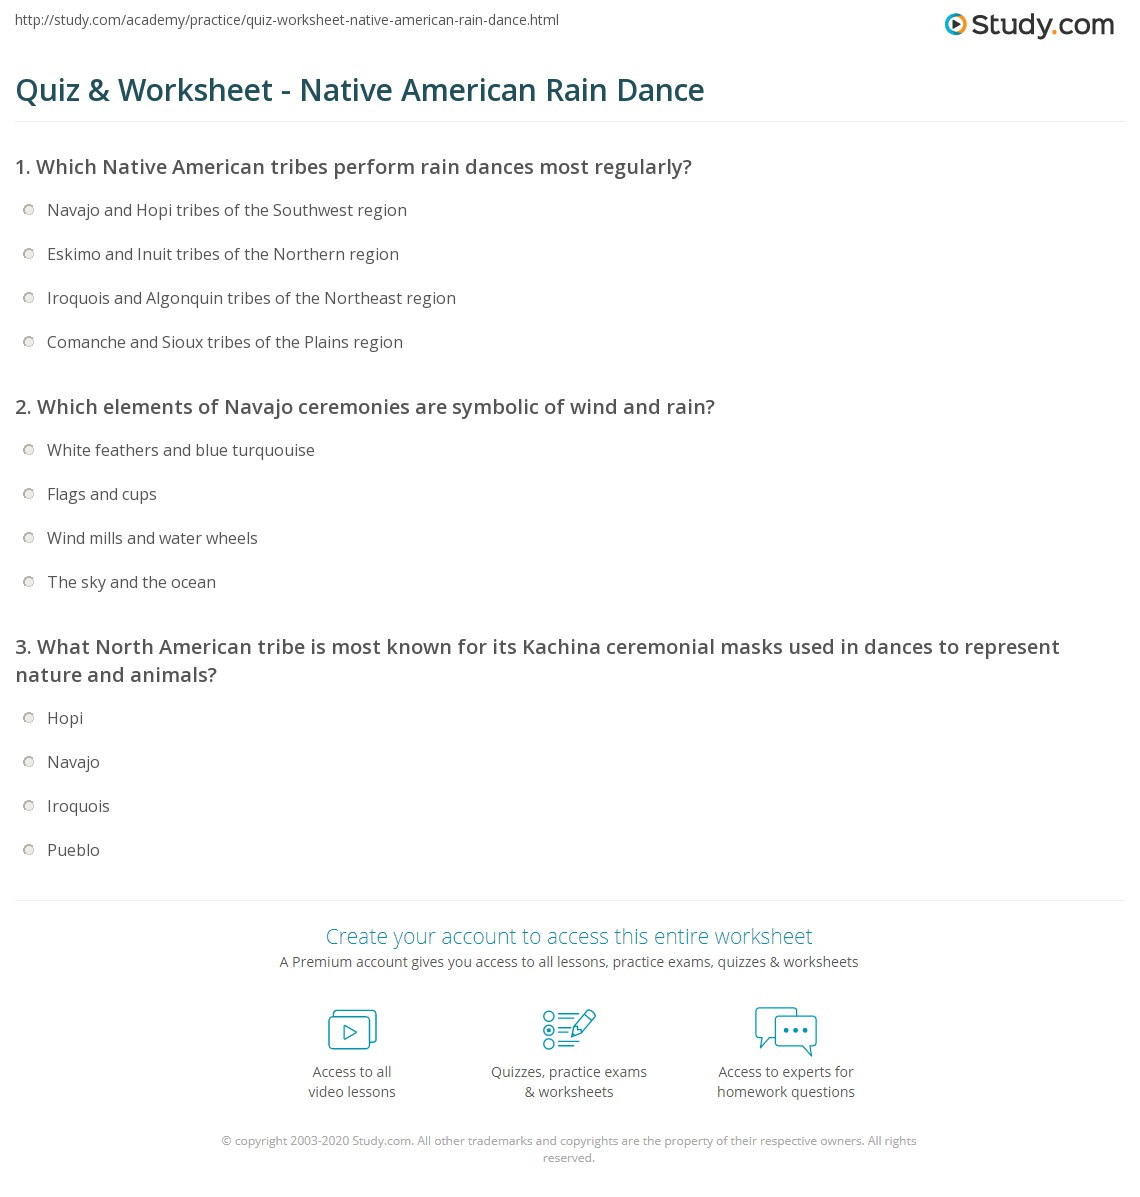 rain dance essay Discover 26 rainy day activities to do with your kids share this classic movie scene with your kids, then go outside to sing and dance in the rain yourselves.